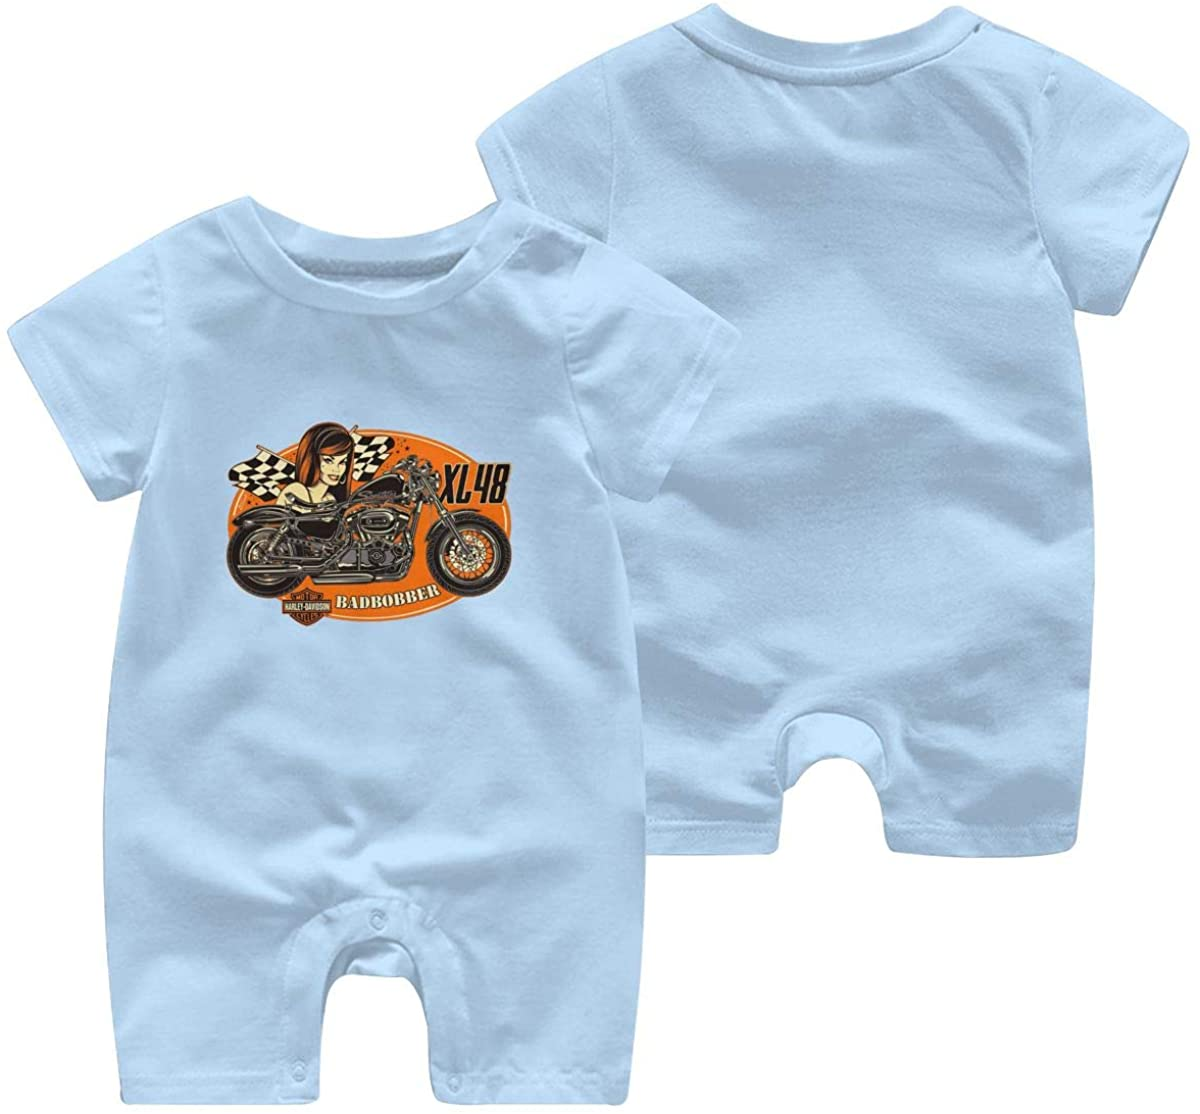 Harley Davidson One Piece Outfits Baby Solid Color Rompers with Button Kids Short Sleeve Playsuit Jumpsuits Cotton Clothing 2t Sky Blue